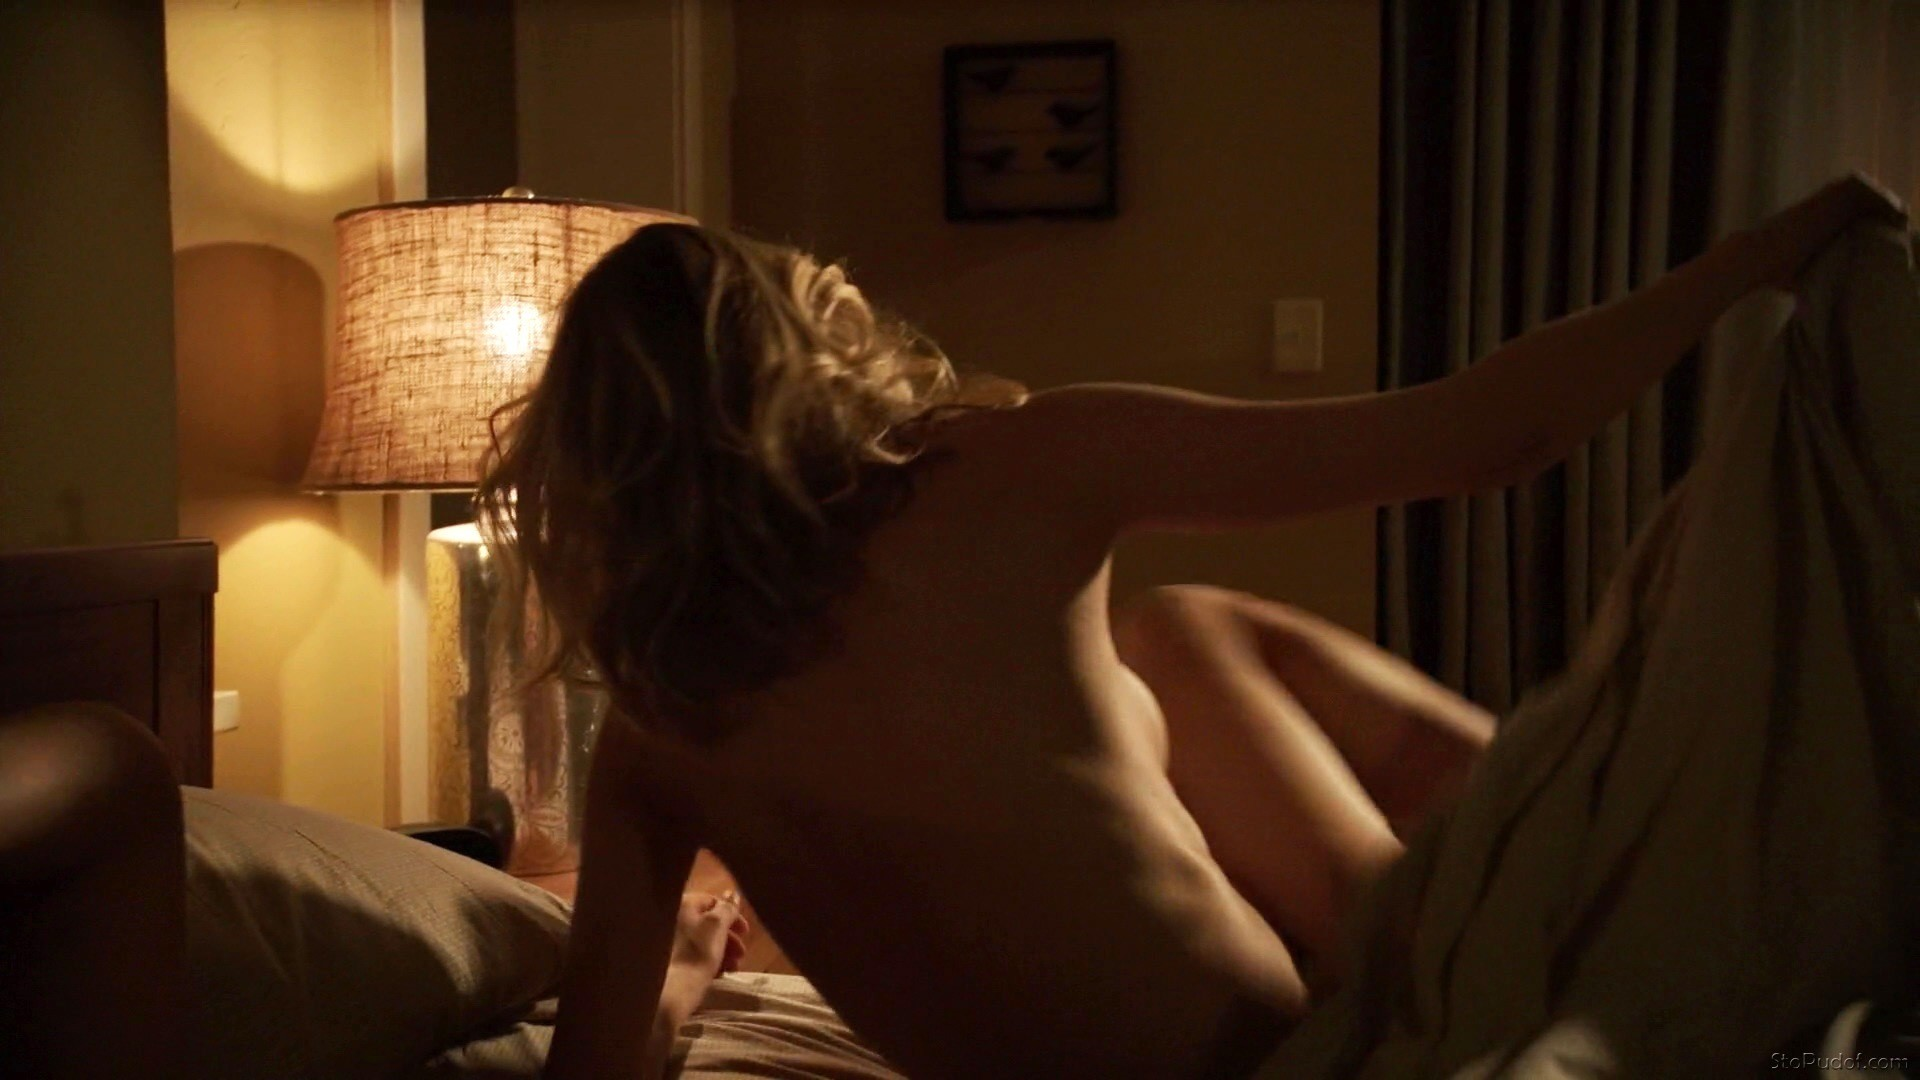 link to nude pictures of Diane Kruger - UkPhotoSafari